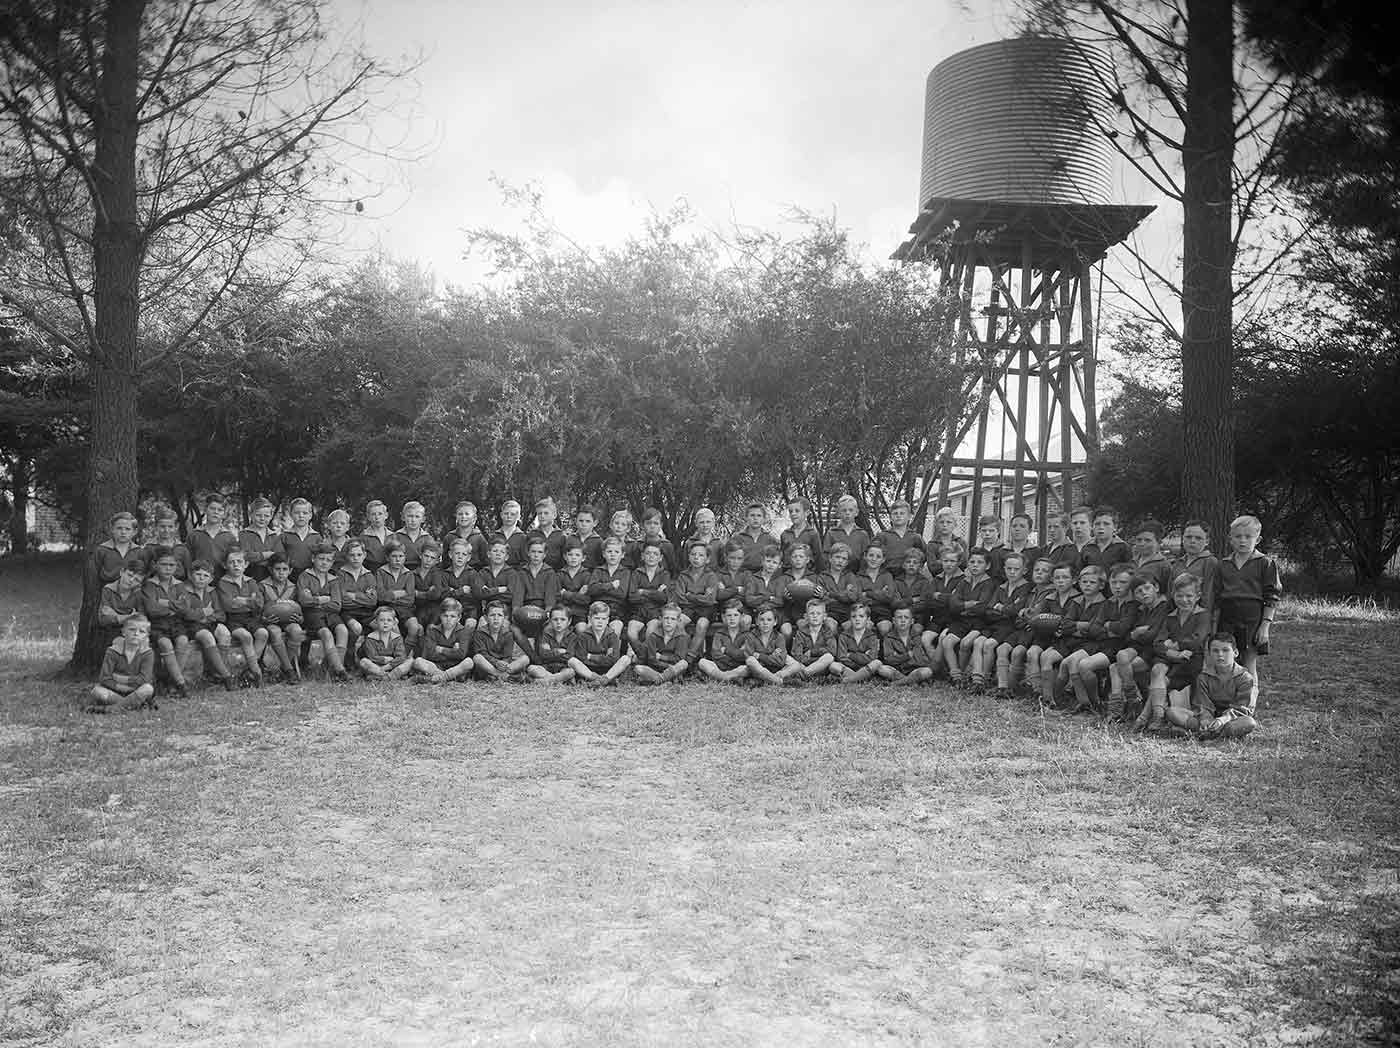 Black and white photo showing about 100 young boys in three rows, with two rows standing and one row sitting at the front. The boys have their arms folded and legs crossed. Three boys hold footballs. A corrugated iron water tank atop a wooden stand and a row of trees can be seen behind. - click to view larger image